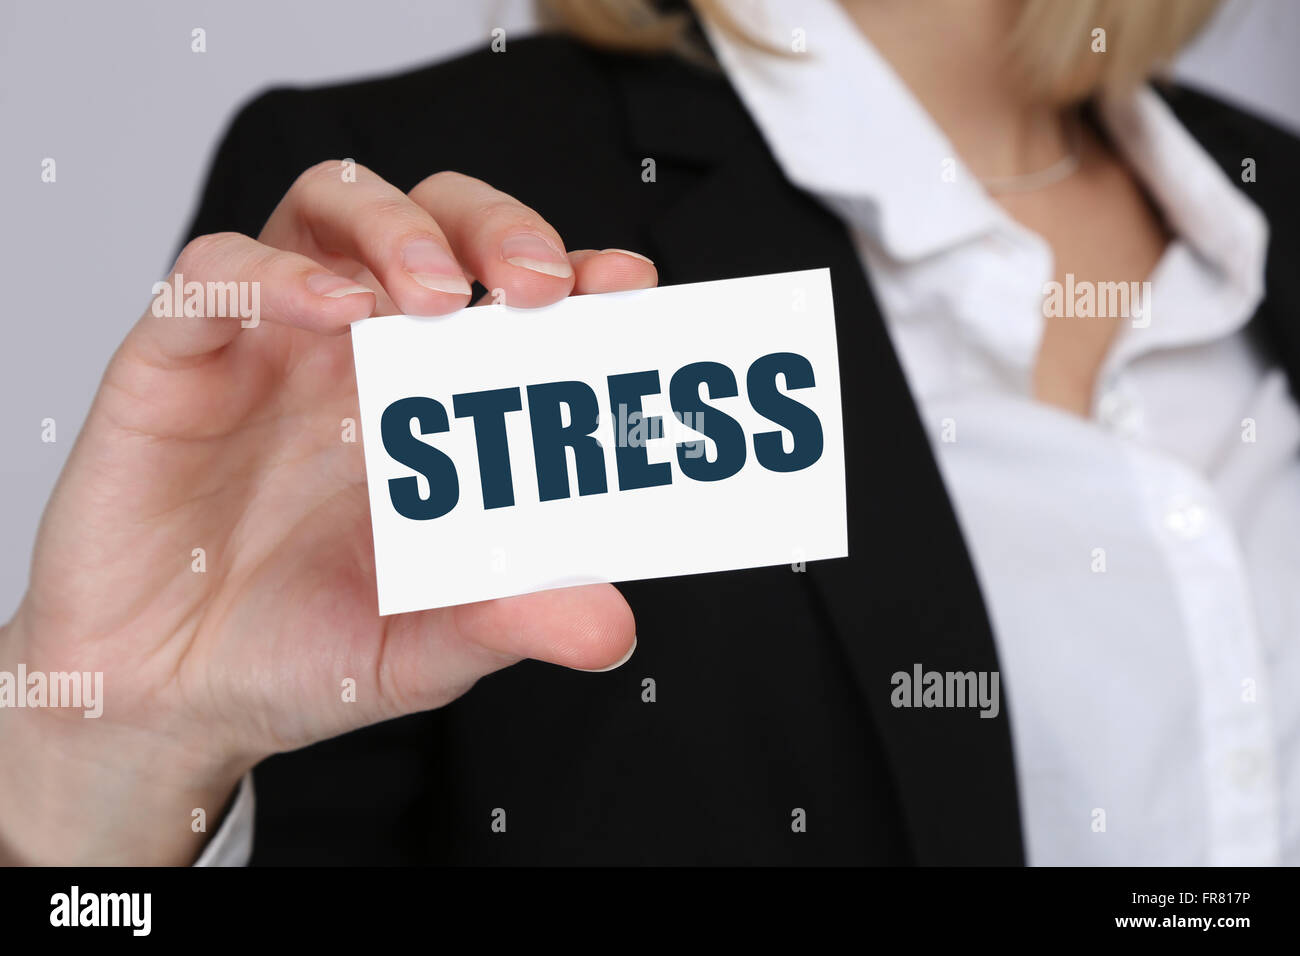 Stress stressed business woman burnout at work concept relaxed - Stock Image